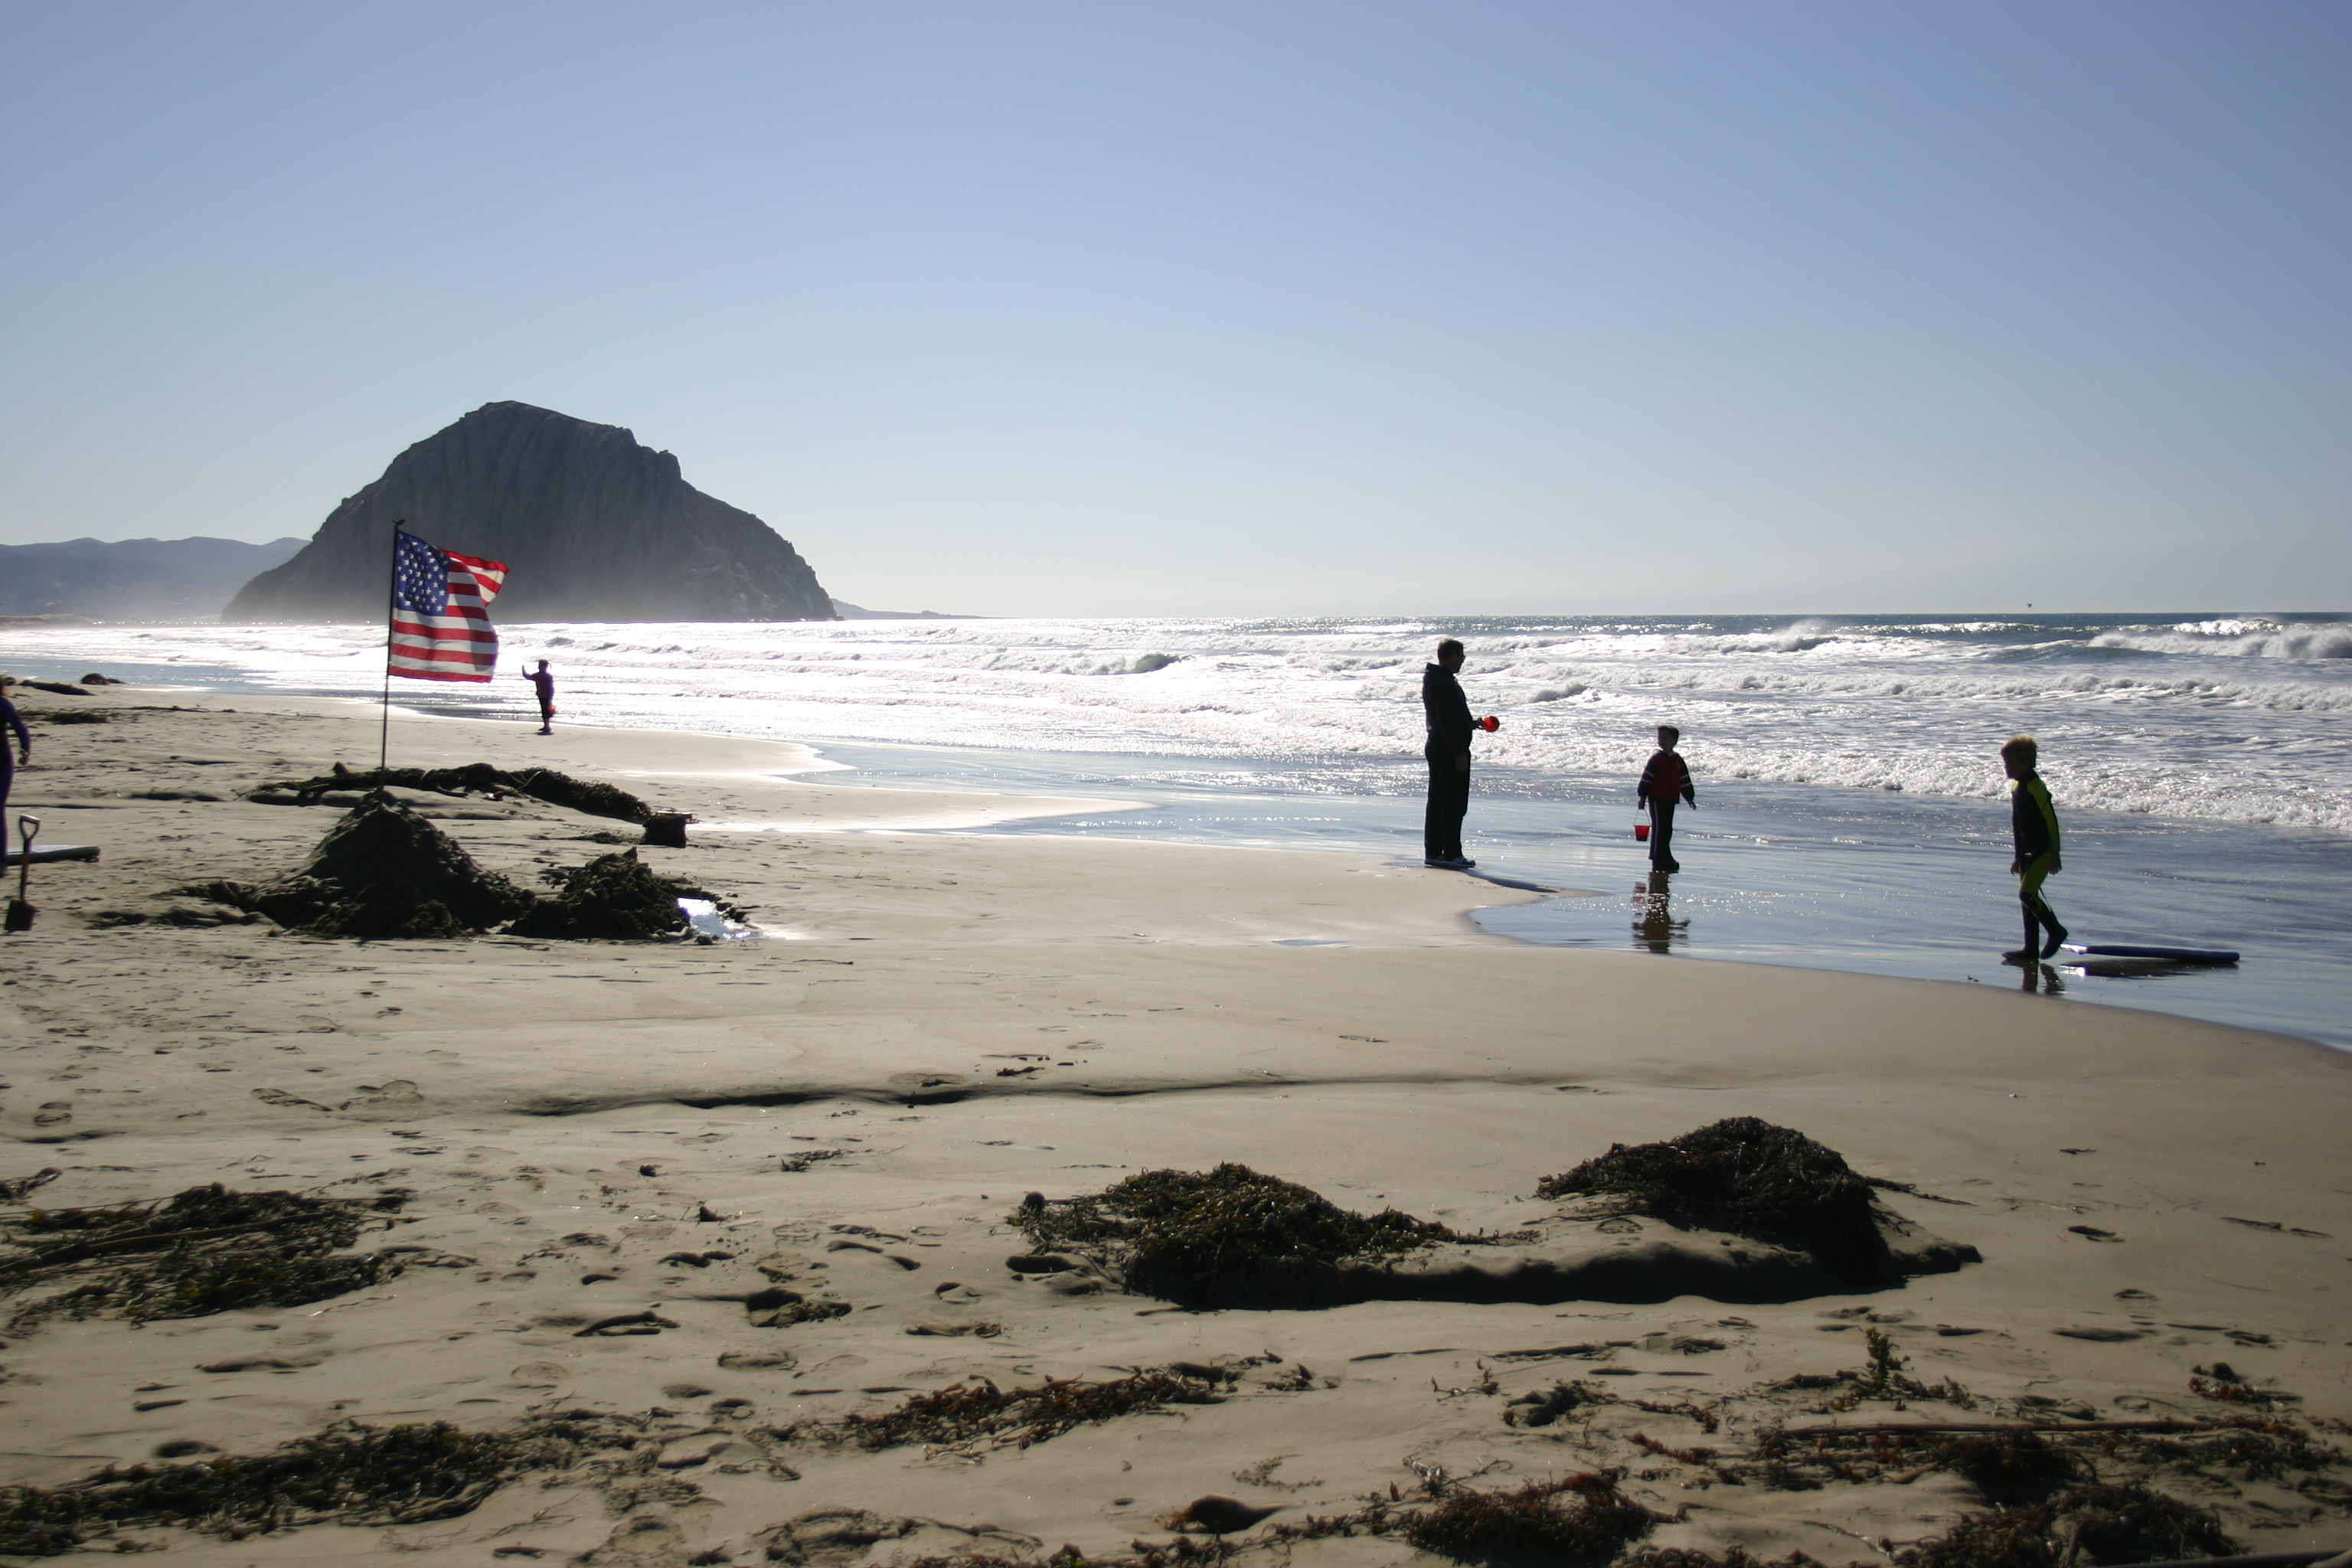 An American flag flies on the beach near Morro Rock while children and adults play in the water nearby.